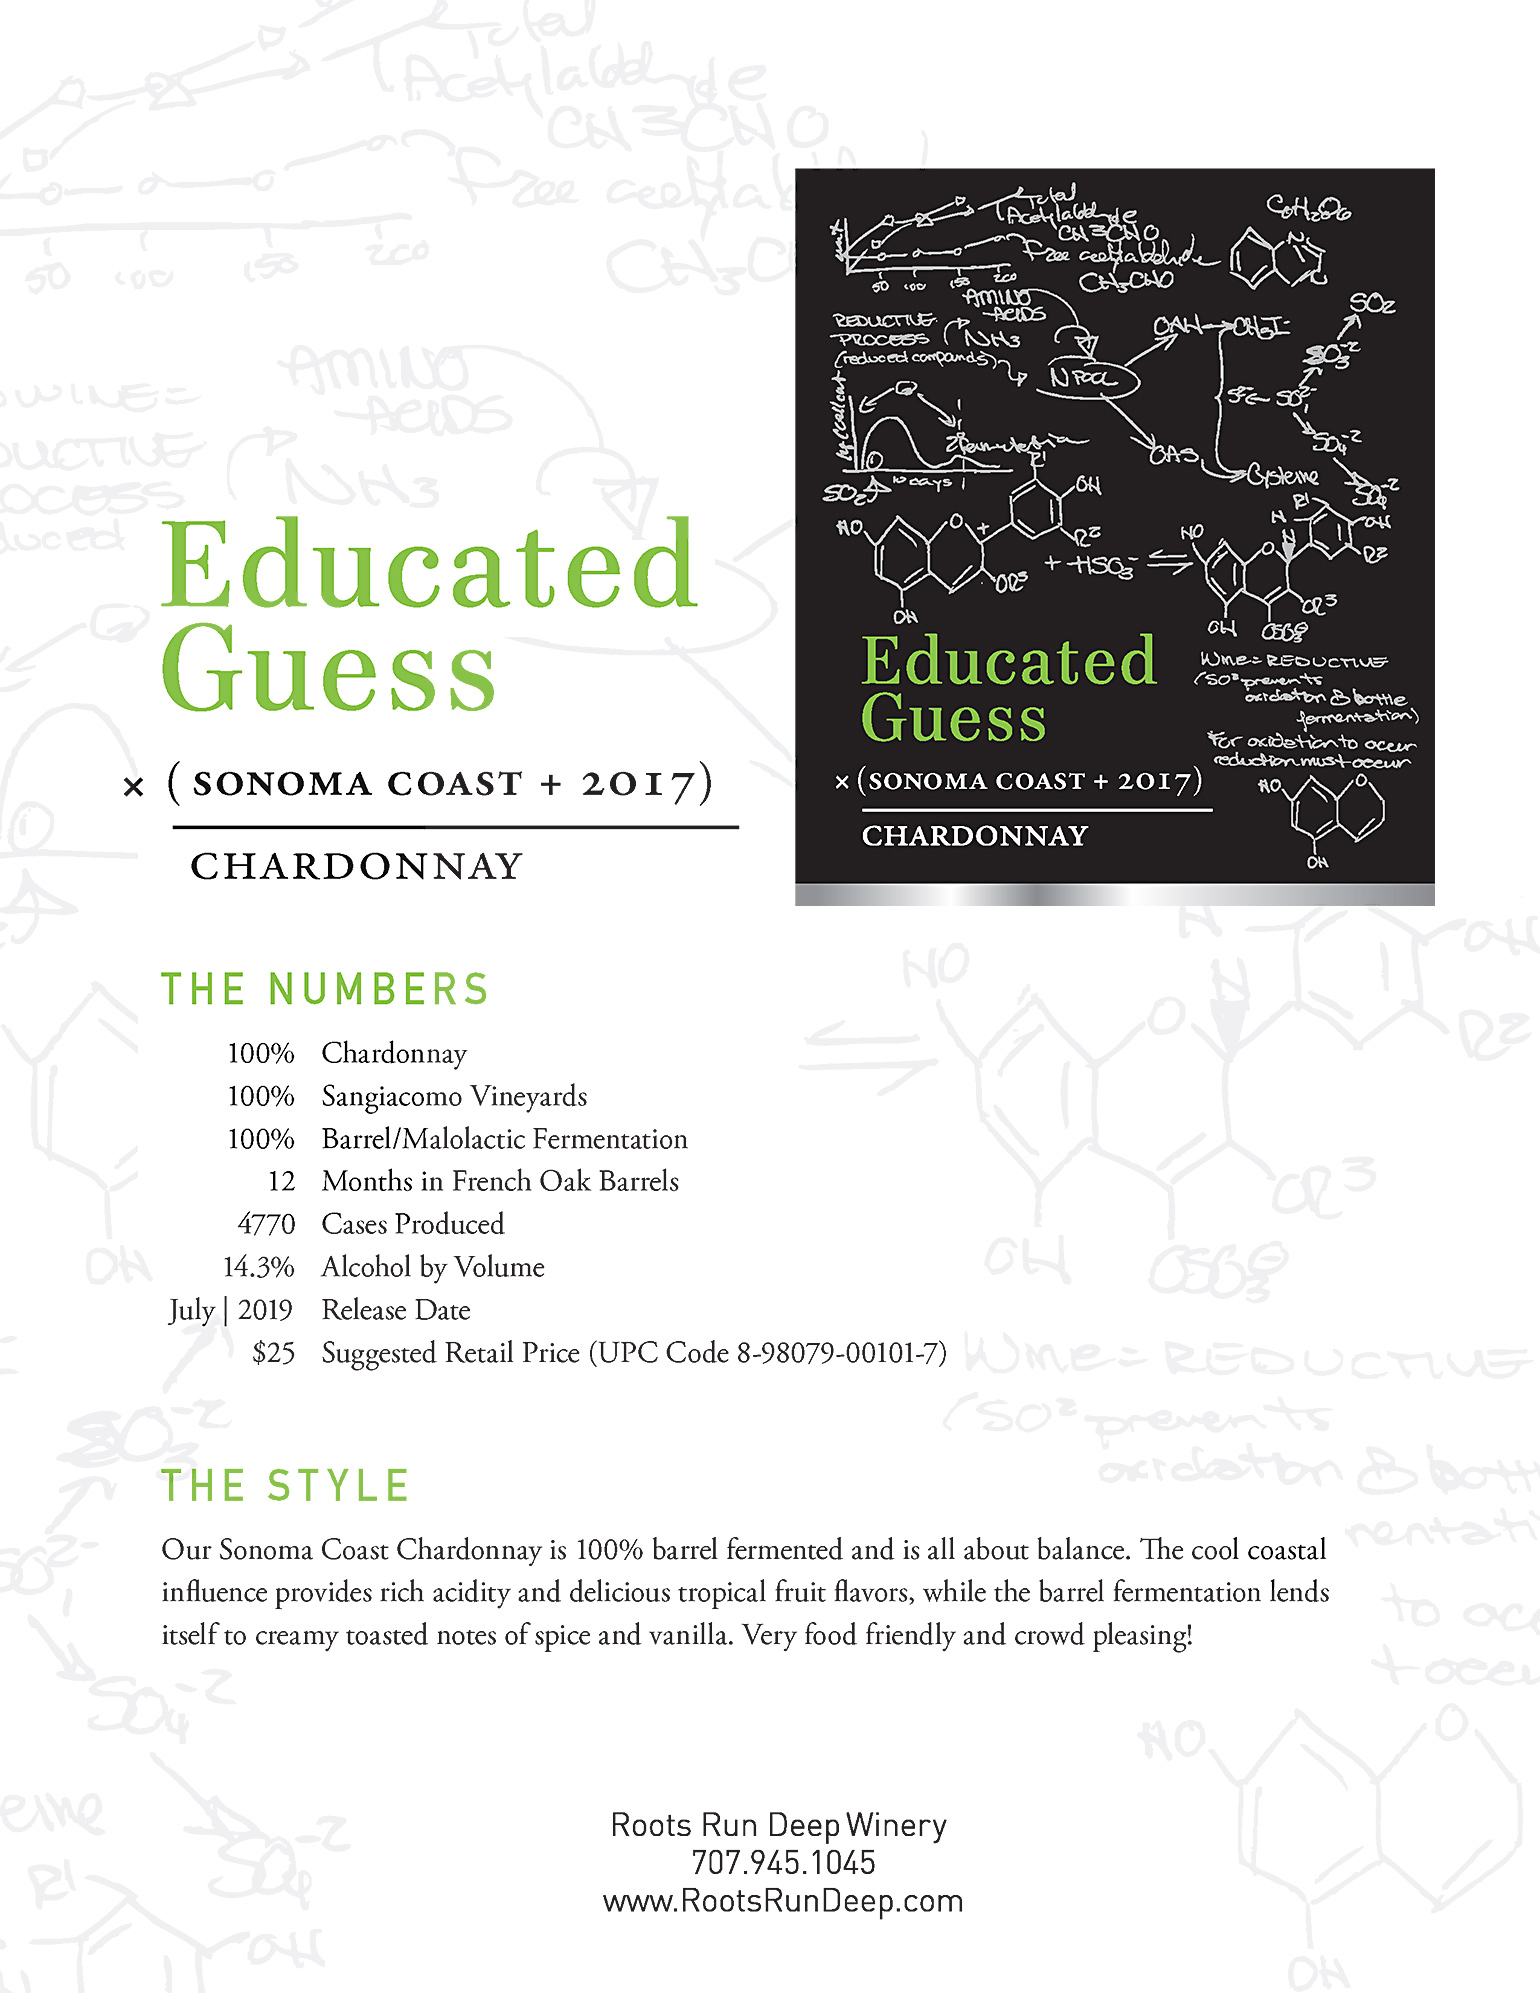 2017 Educated Guess Chardonnay Sonoma Coast Tech Sheet